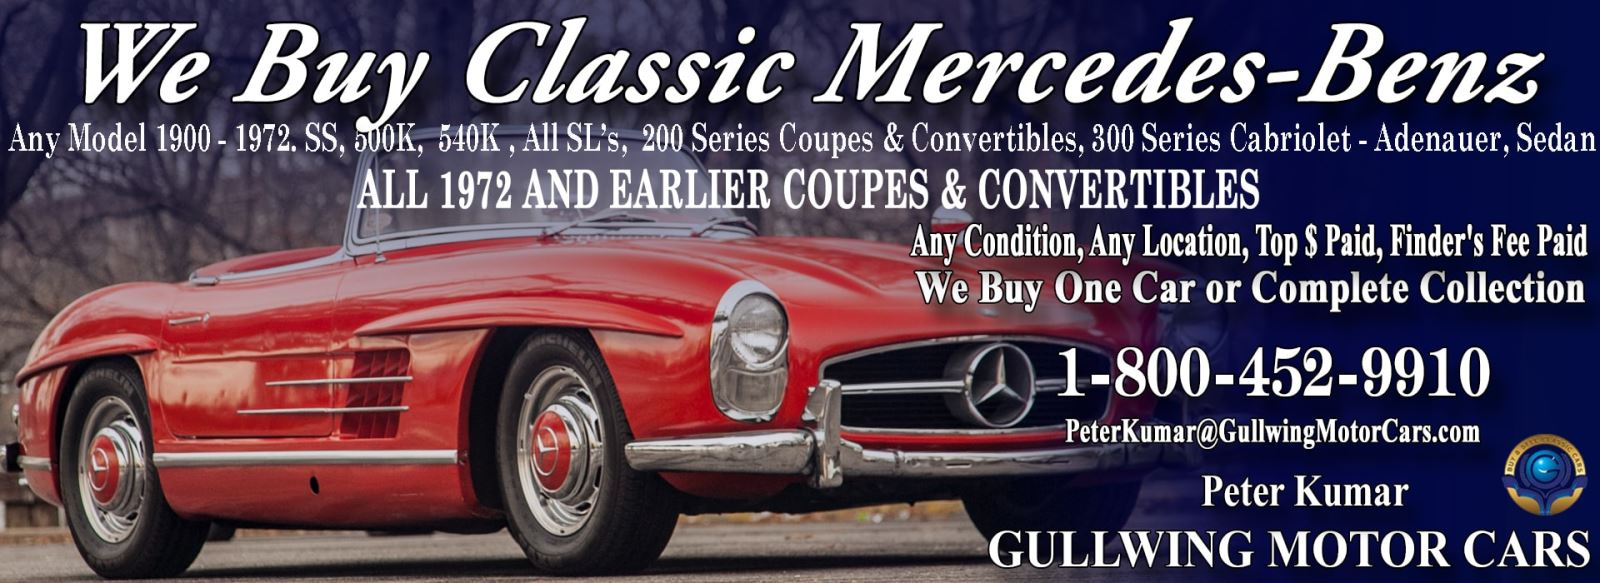 Classic Mercedes 300B for sale, we buy vintage Mercedes 300 B. Call Peter Kumar. Gullwing Motor